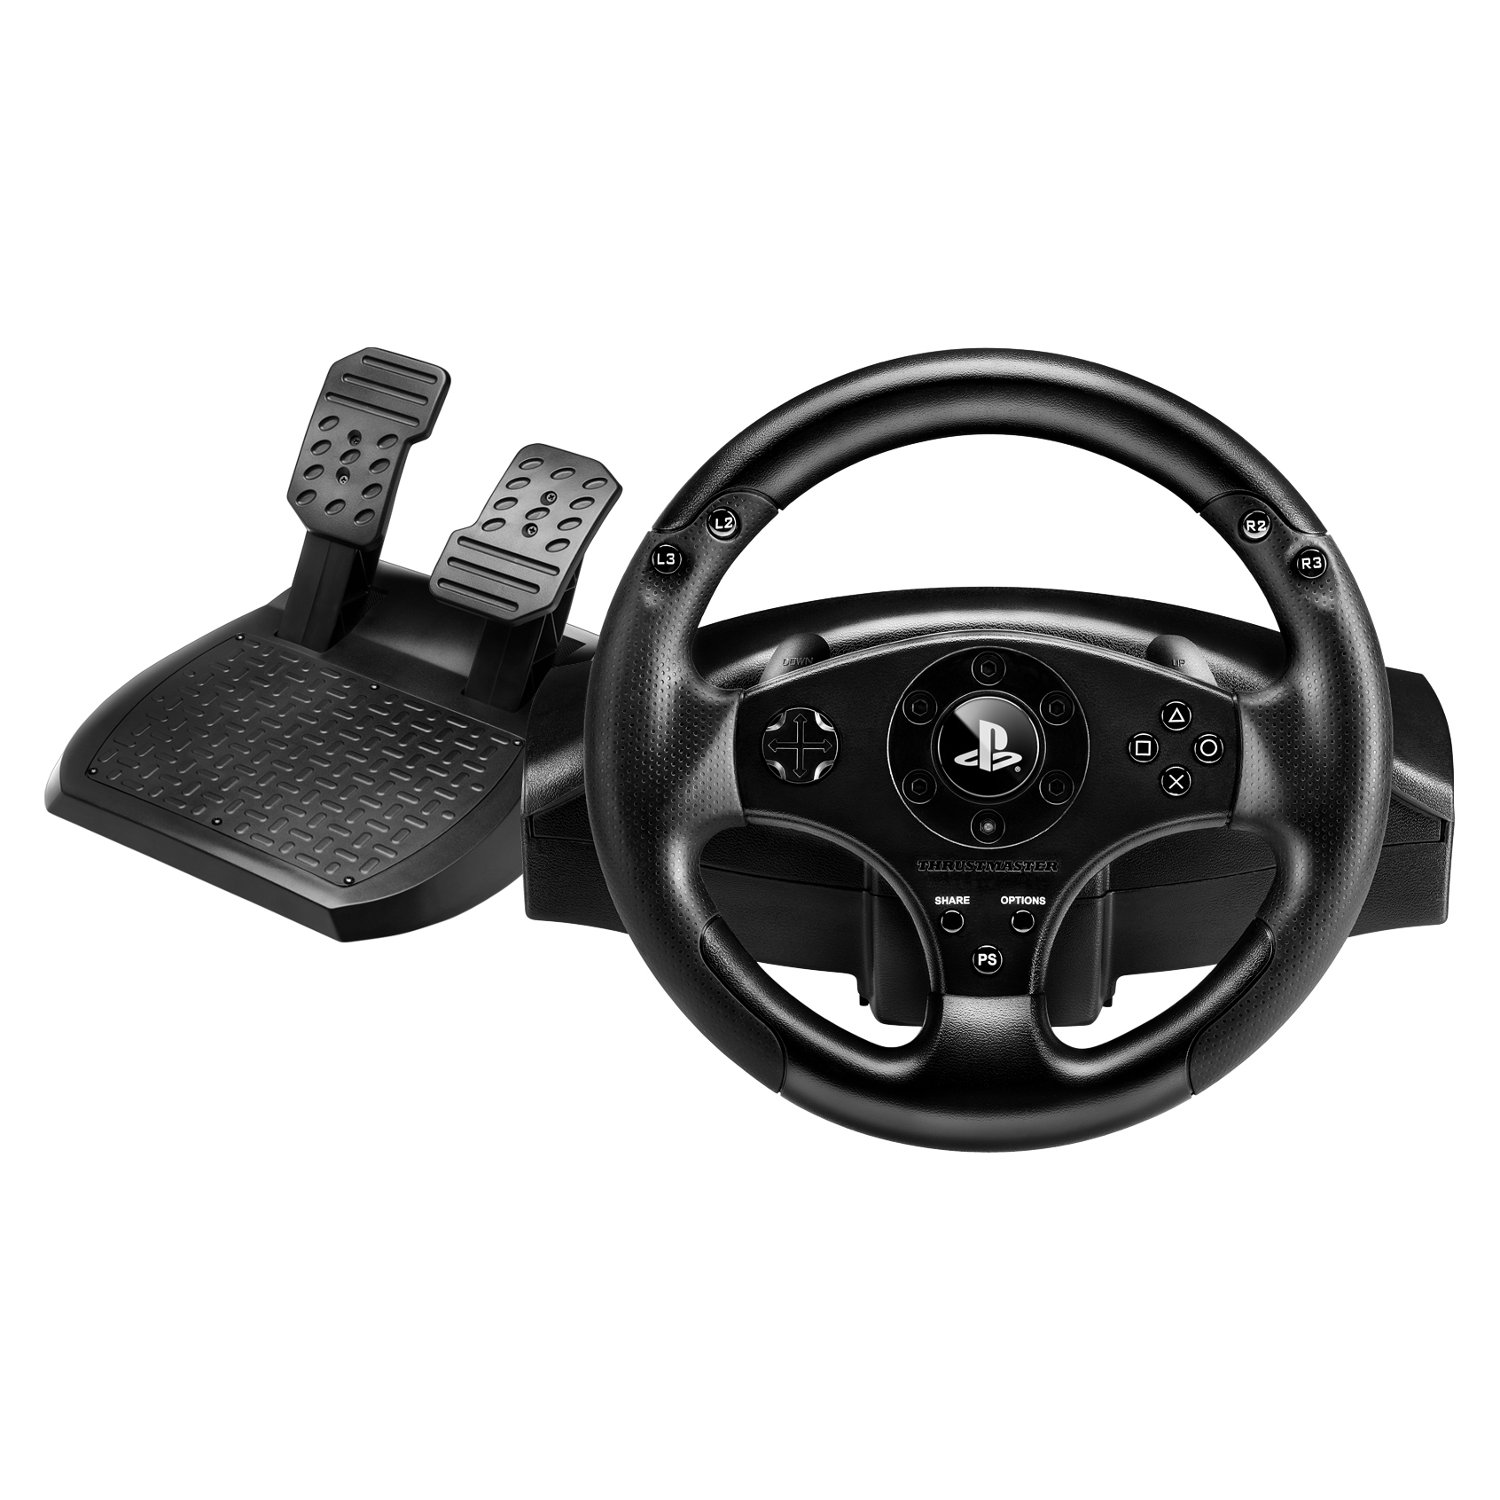 thrustmaster t80 racing wheel accessoires ps4 thrustmaster sur. Black Bedroom Furniture Sets. Home Design Ideas